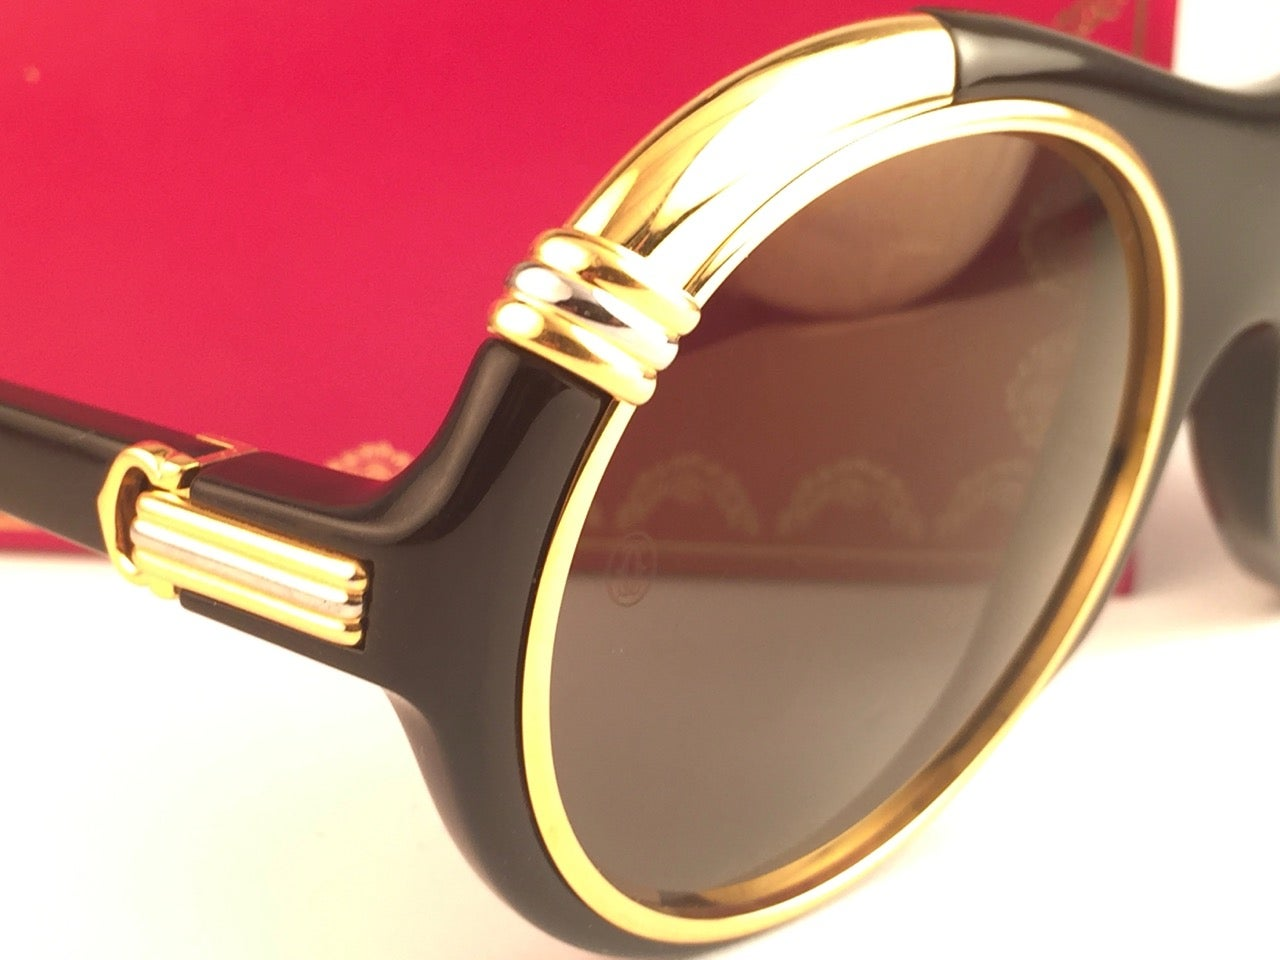 e9bcab6c7600 New Cartier Diabolo Gold and Black 53mm 24k Gold Sunglasses France at  1stdibs